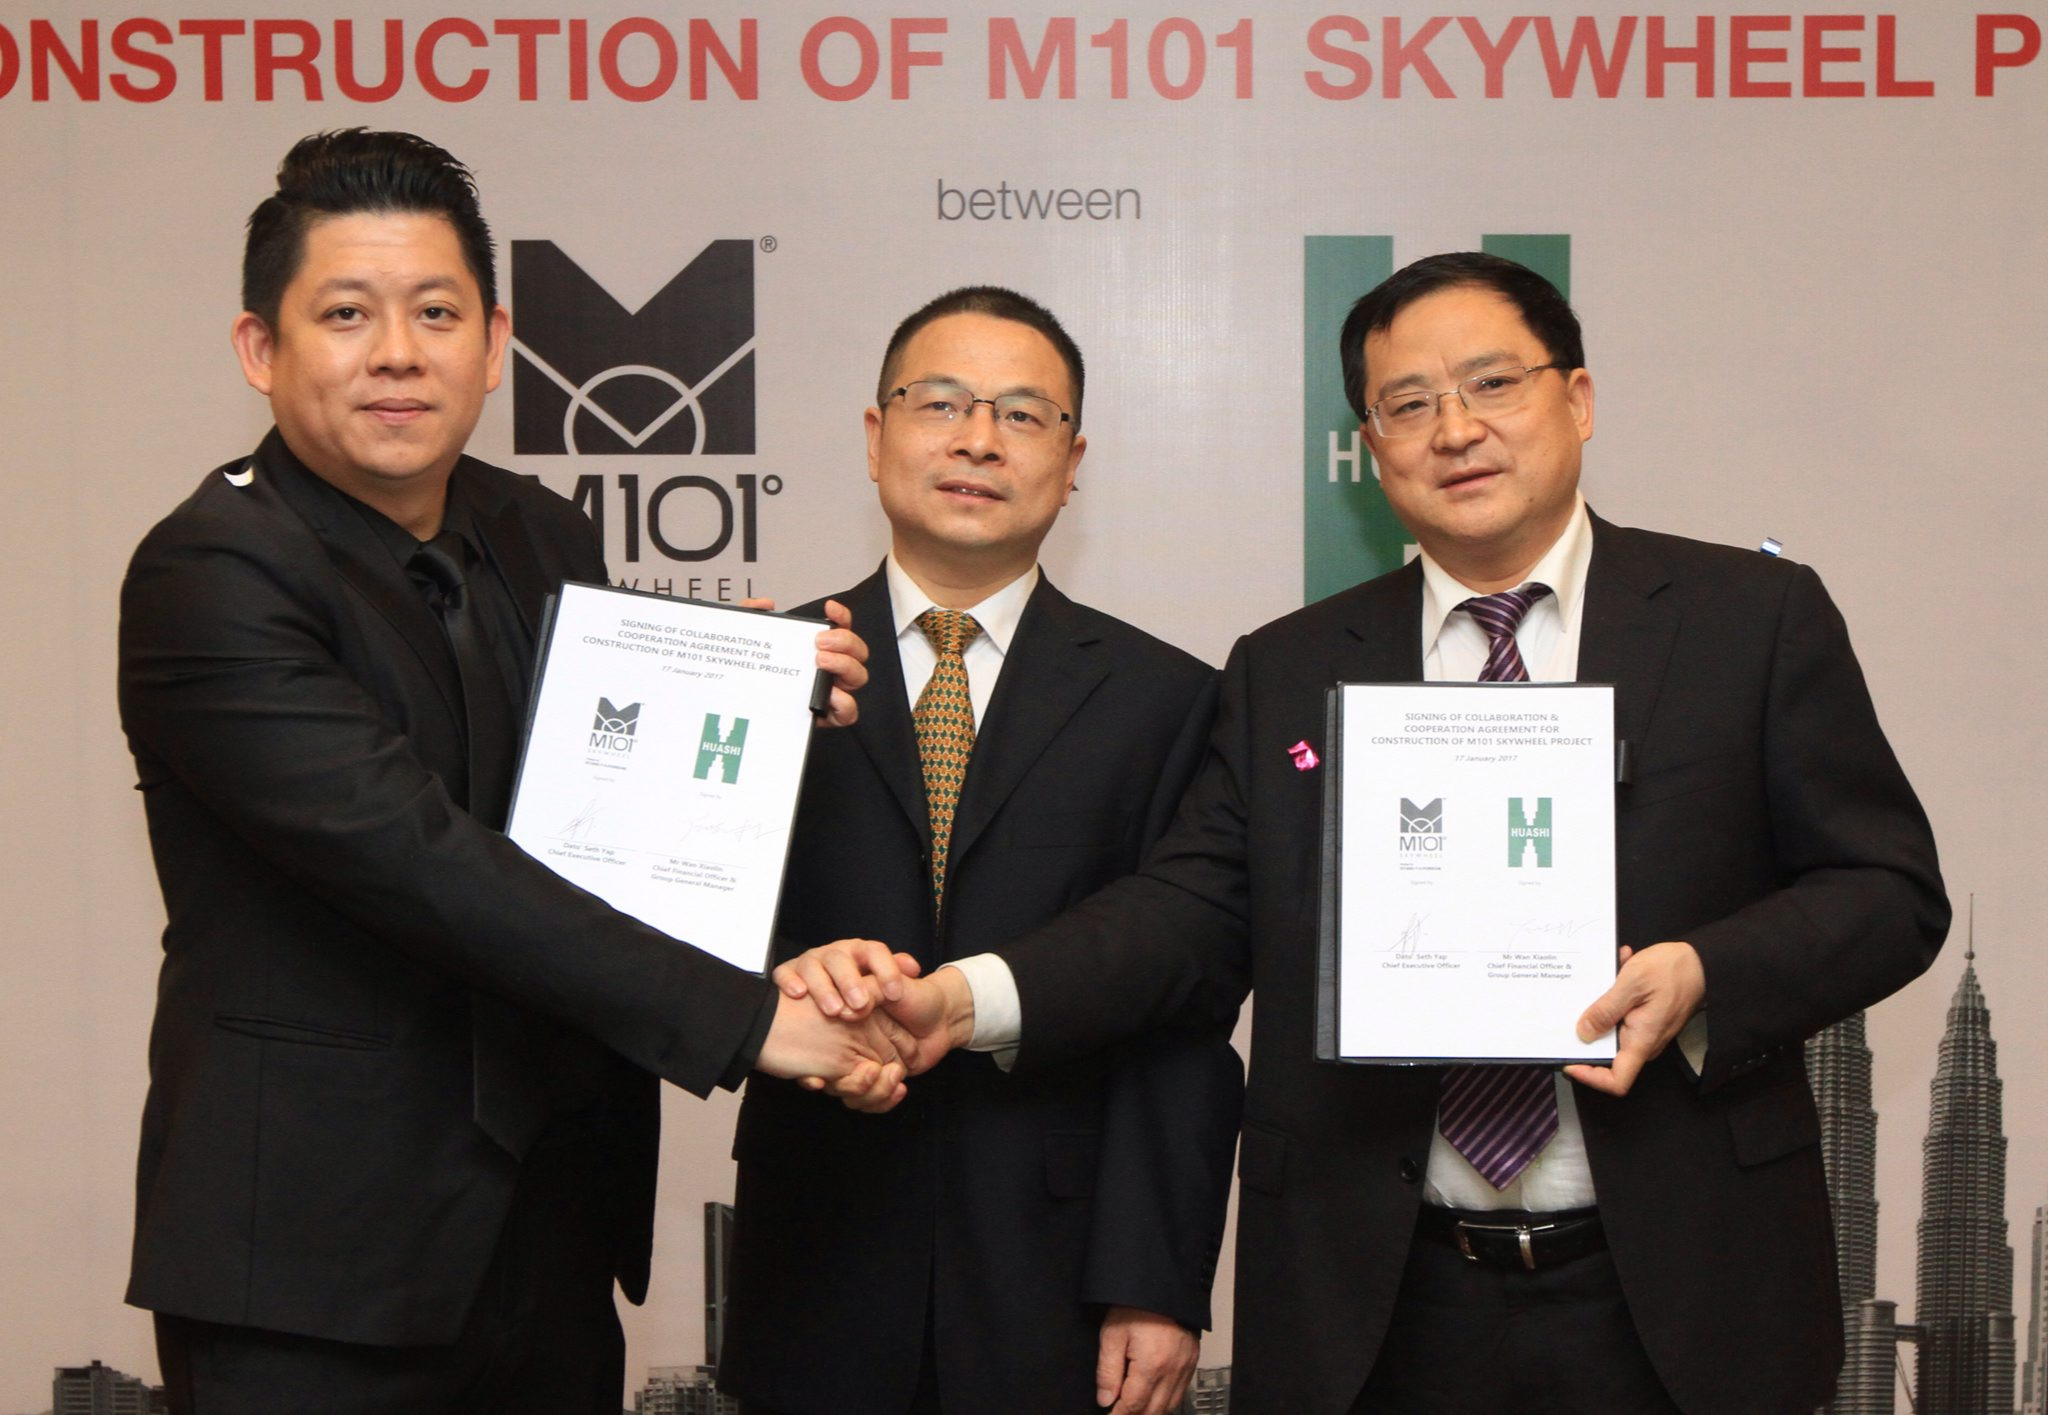 M101 Holdings Sdn Bhd chief executive officer Datuk Seth Yap (left) sealing the partnership with China Huashi chief financial officer and group general manager Wan Xiaolin as China Huashi (Malaysia) Sdn Bhd general manager Zhao Chong Xian (center) looks on.